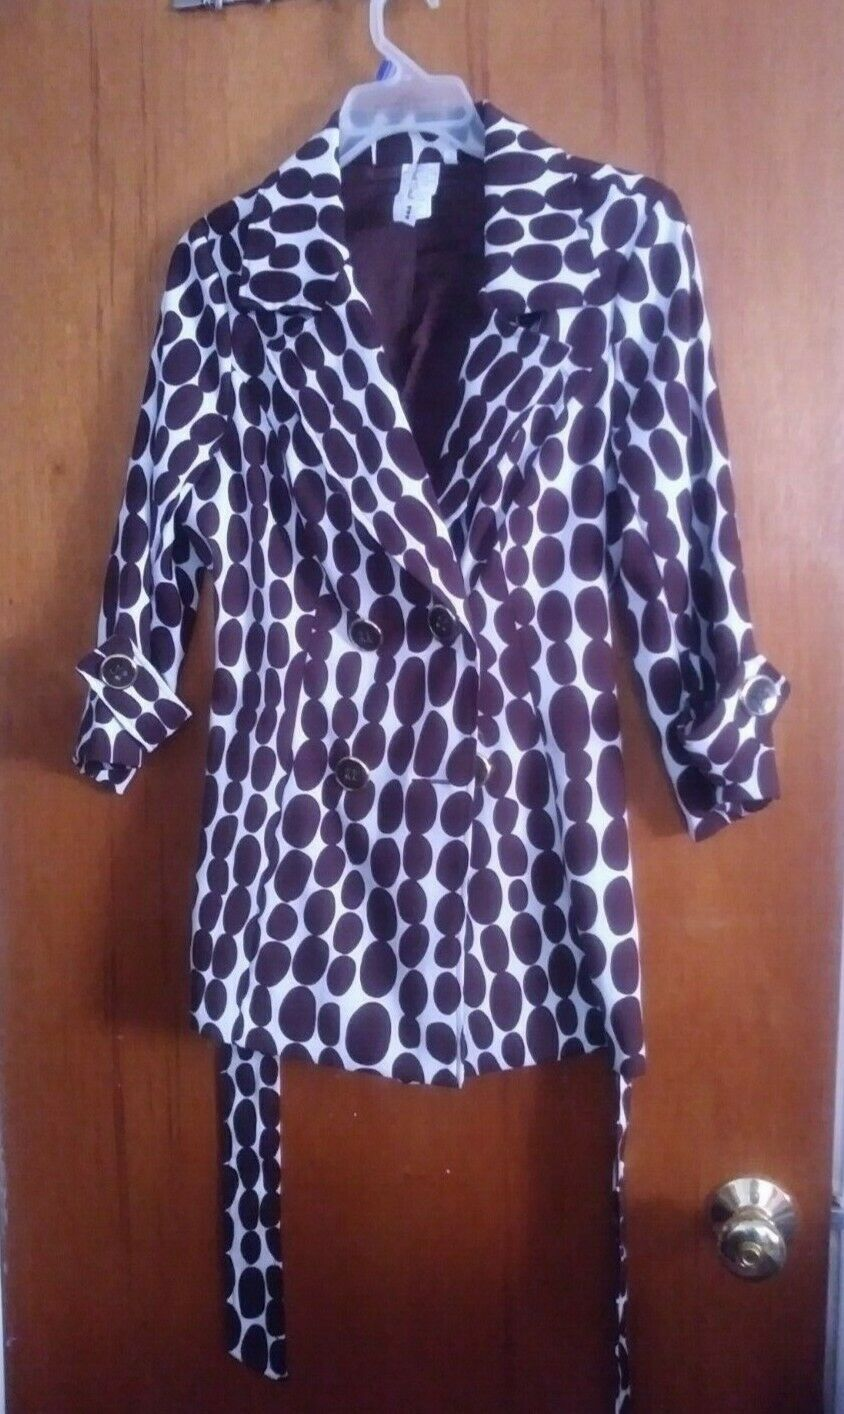 Primary image for Womens Brown Fashion Polka Dot Polyester Top Dress Jackets Blazers Size Medium